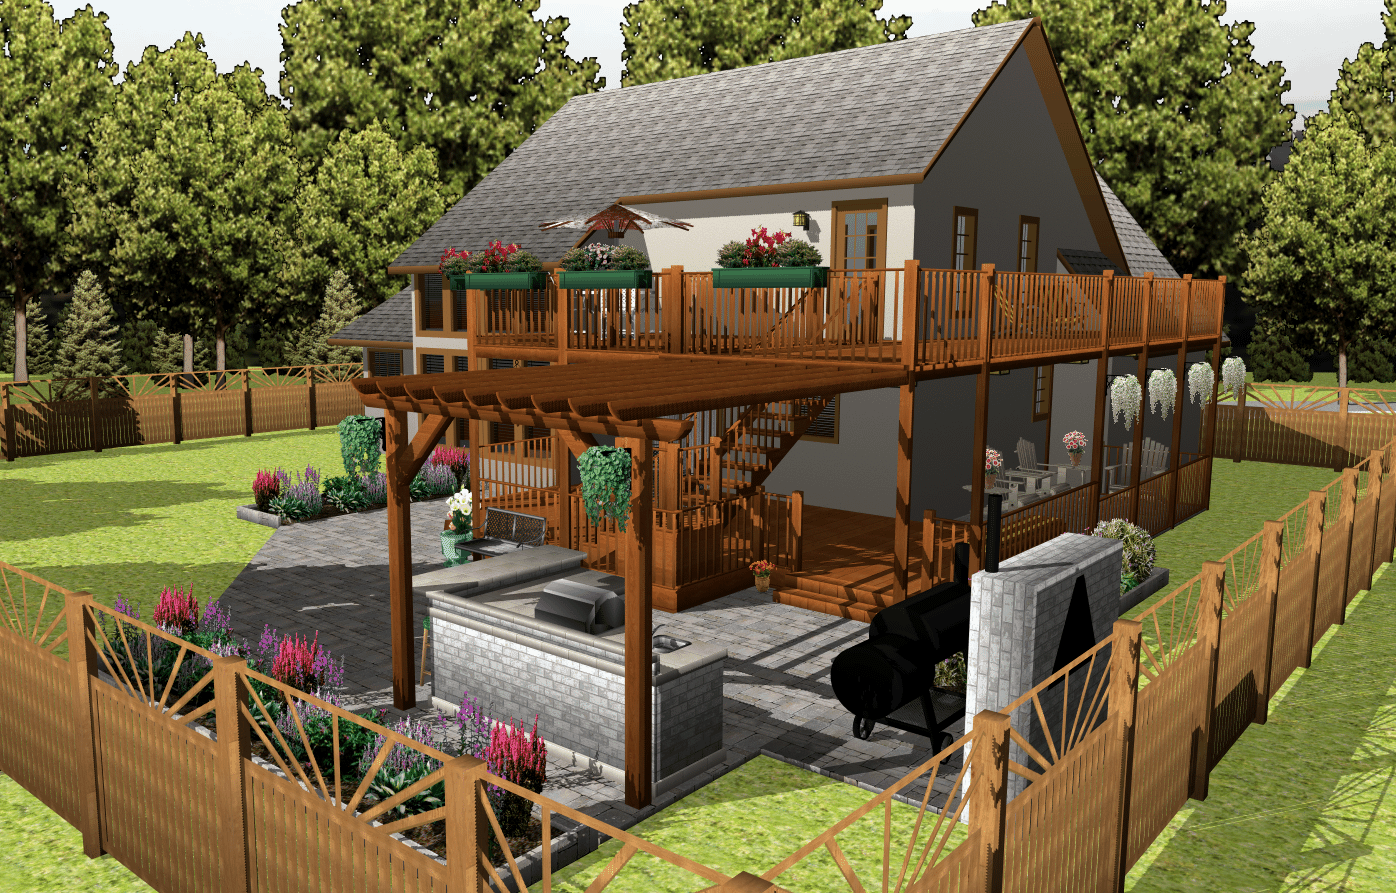 Home design software - Best home and landscape design software ...